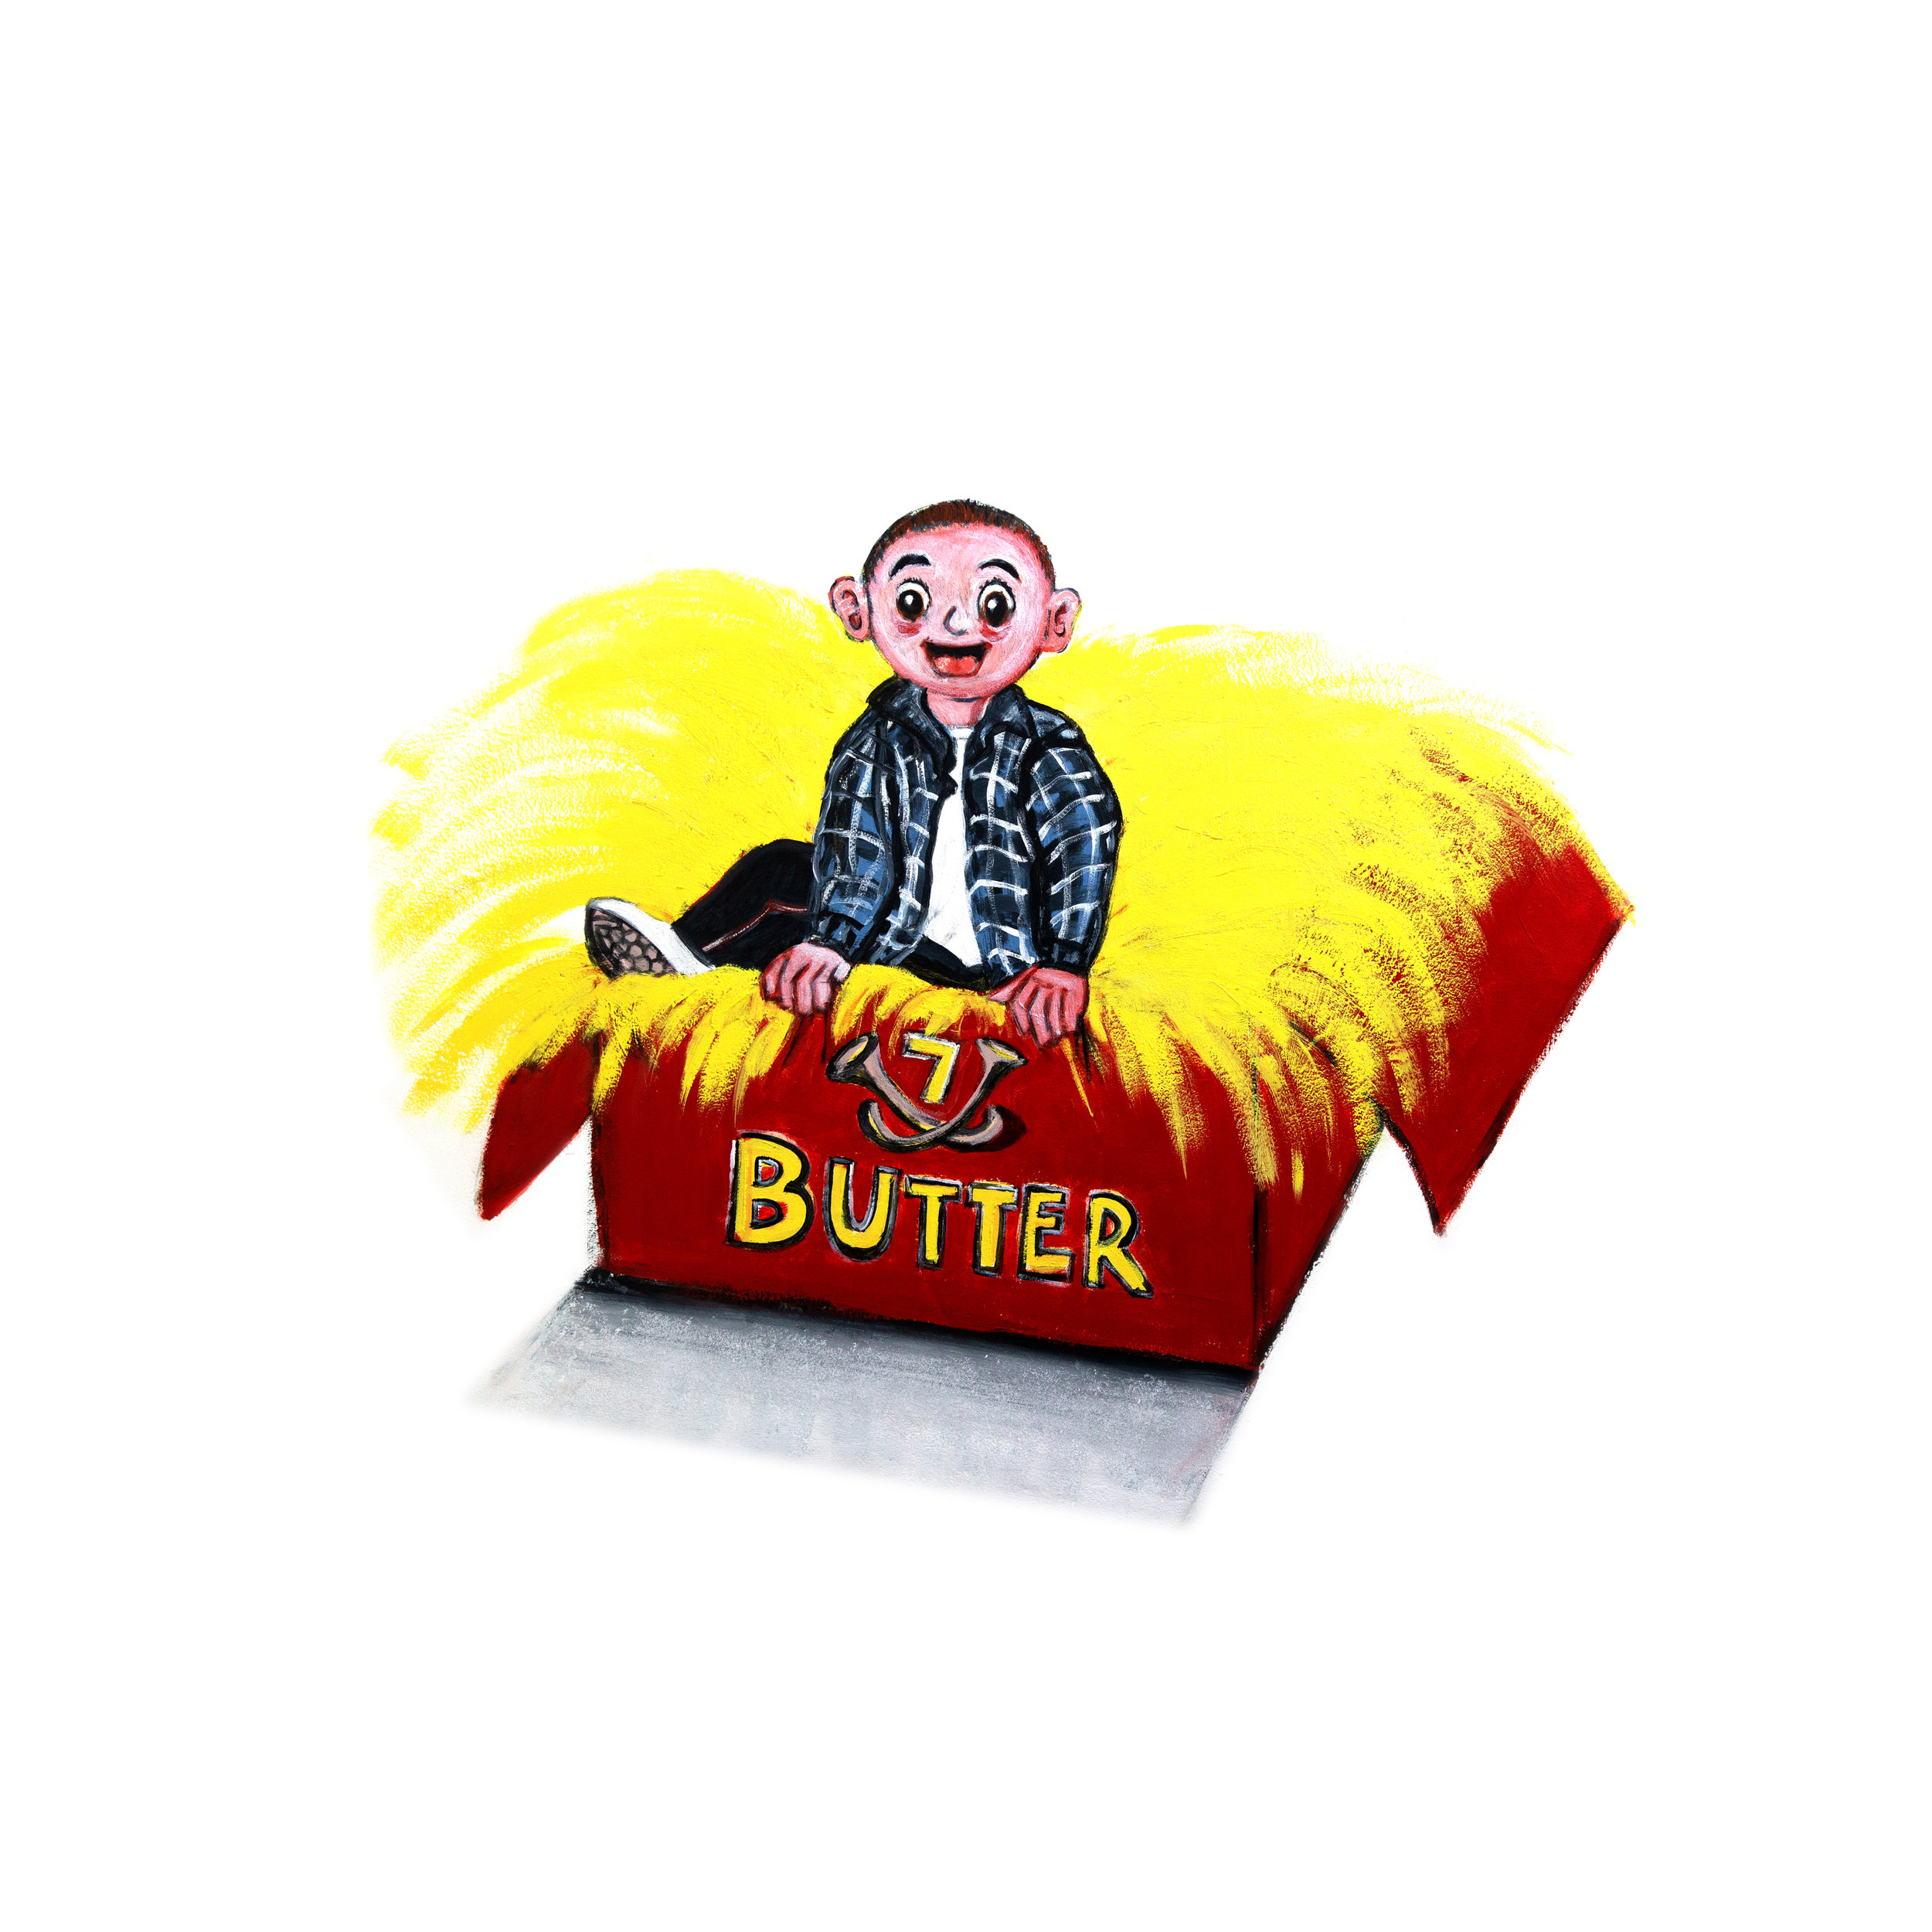 Butter Artwork.jpg